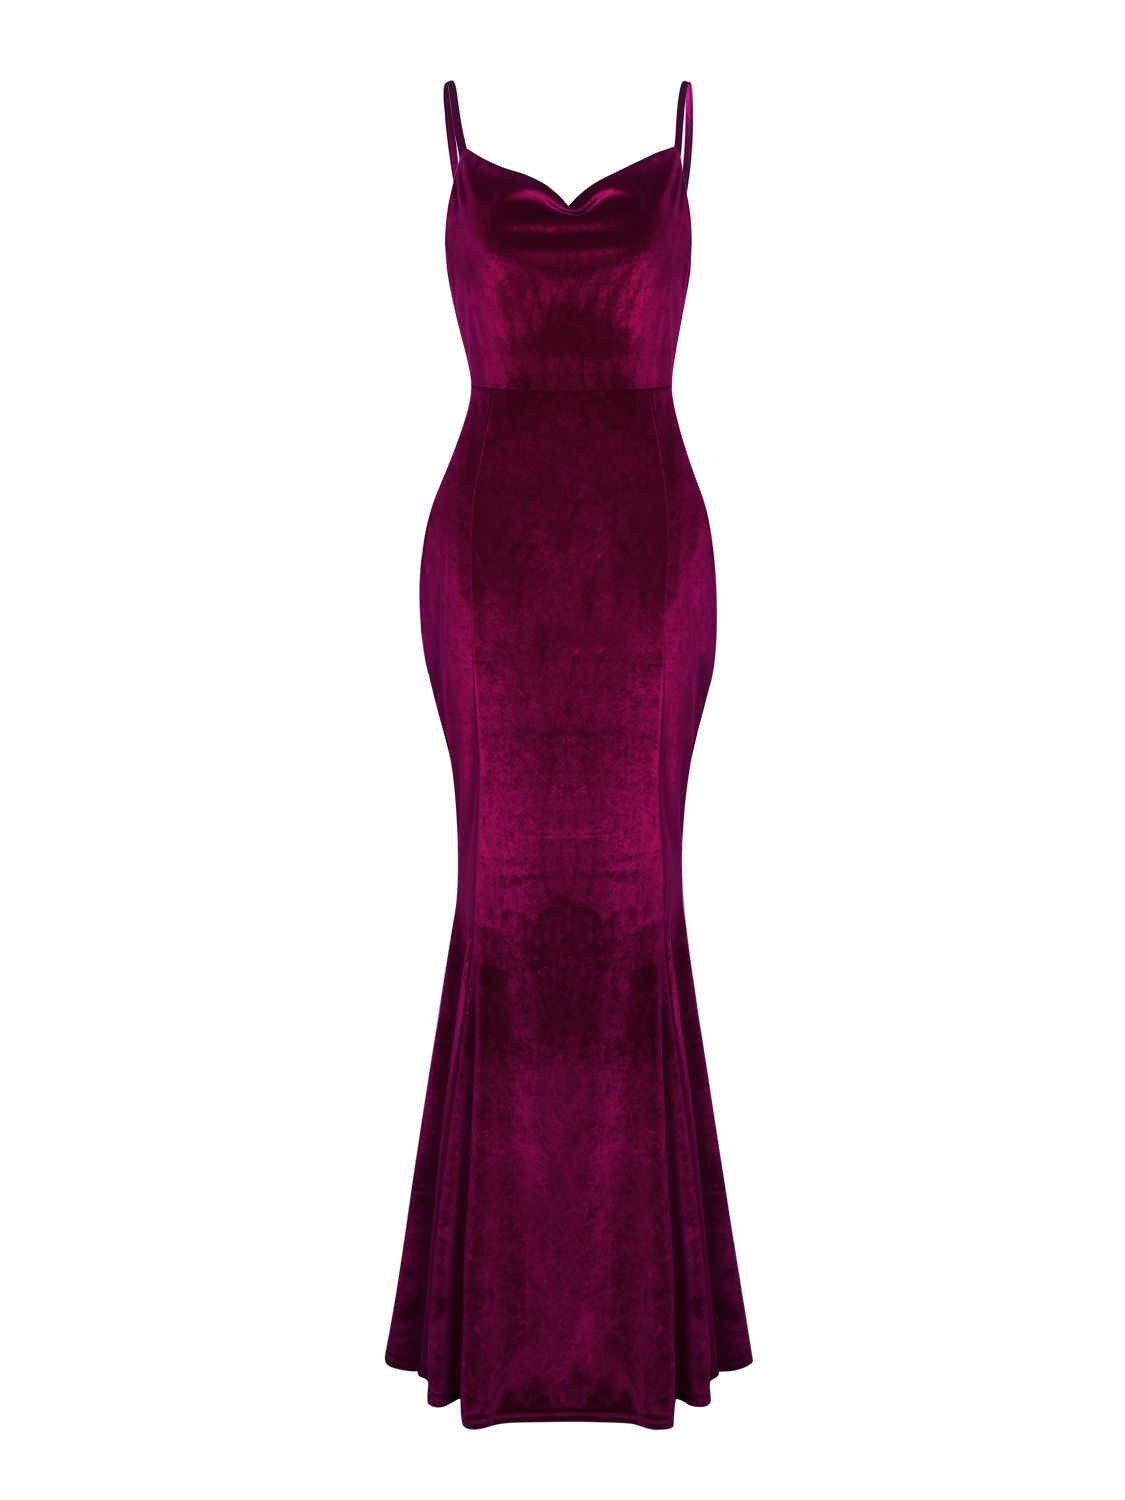 40ad9af4fe68 Burgundy Spaghetti Strap Backless Velvet Maxi Dress - Choies.com ...